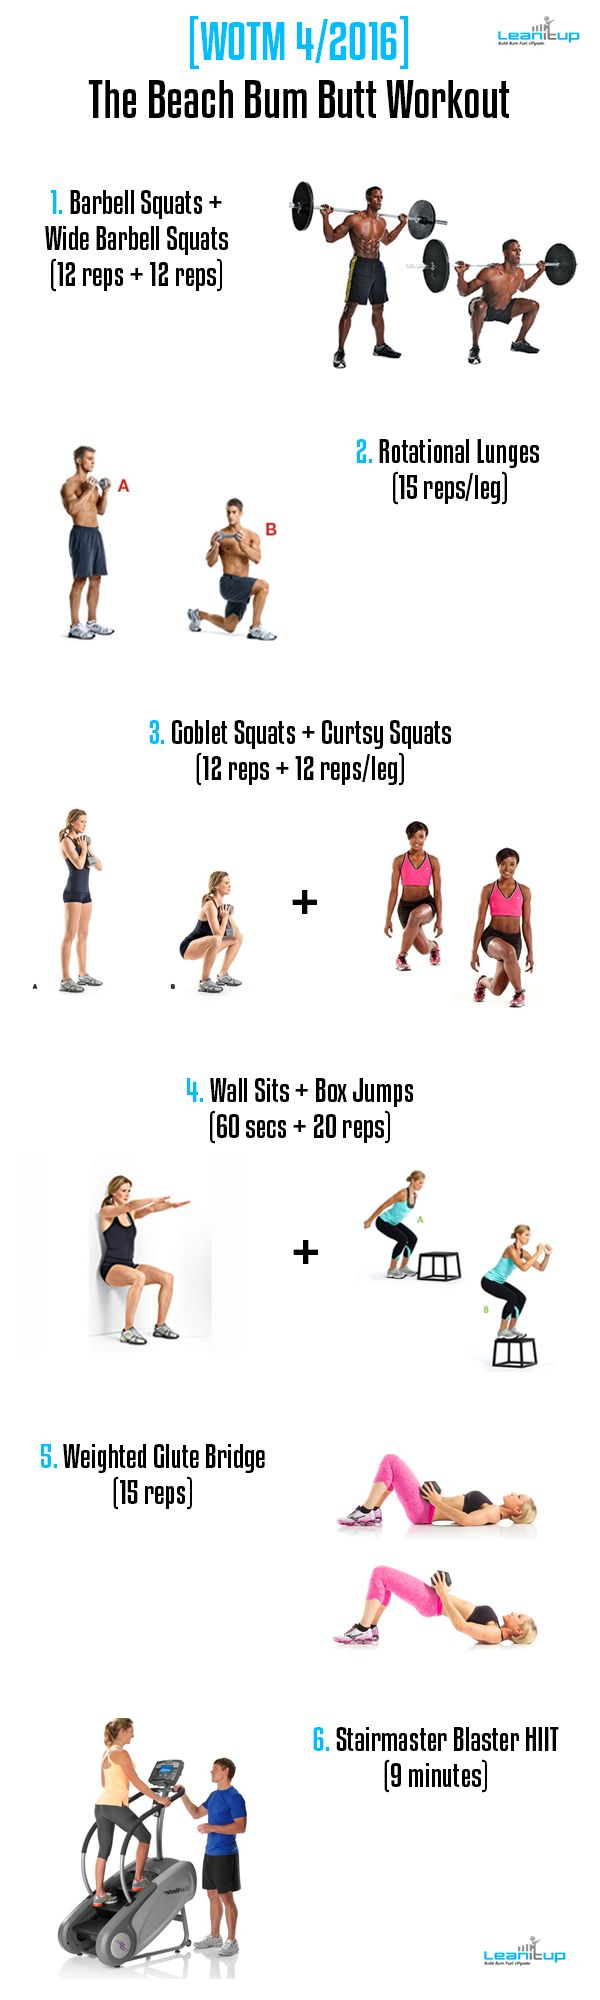 Your brand new summer BUTT workout > [WOTM 04/2016] The Beach Bum Butt Workout.  #fitness #workout #butt #fitfam